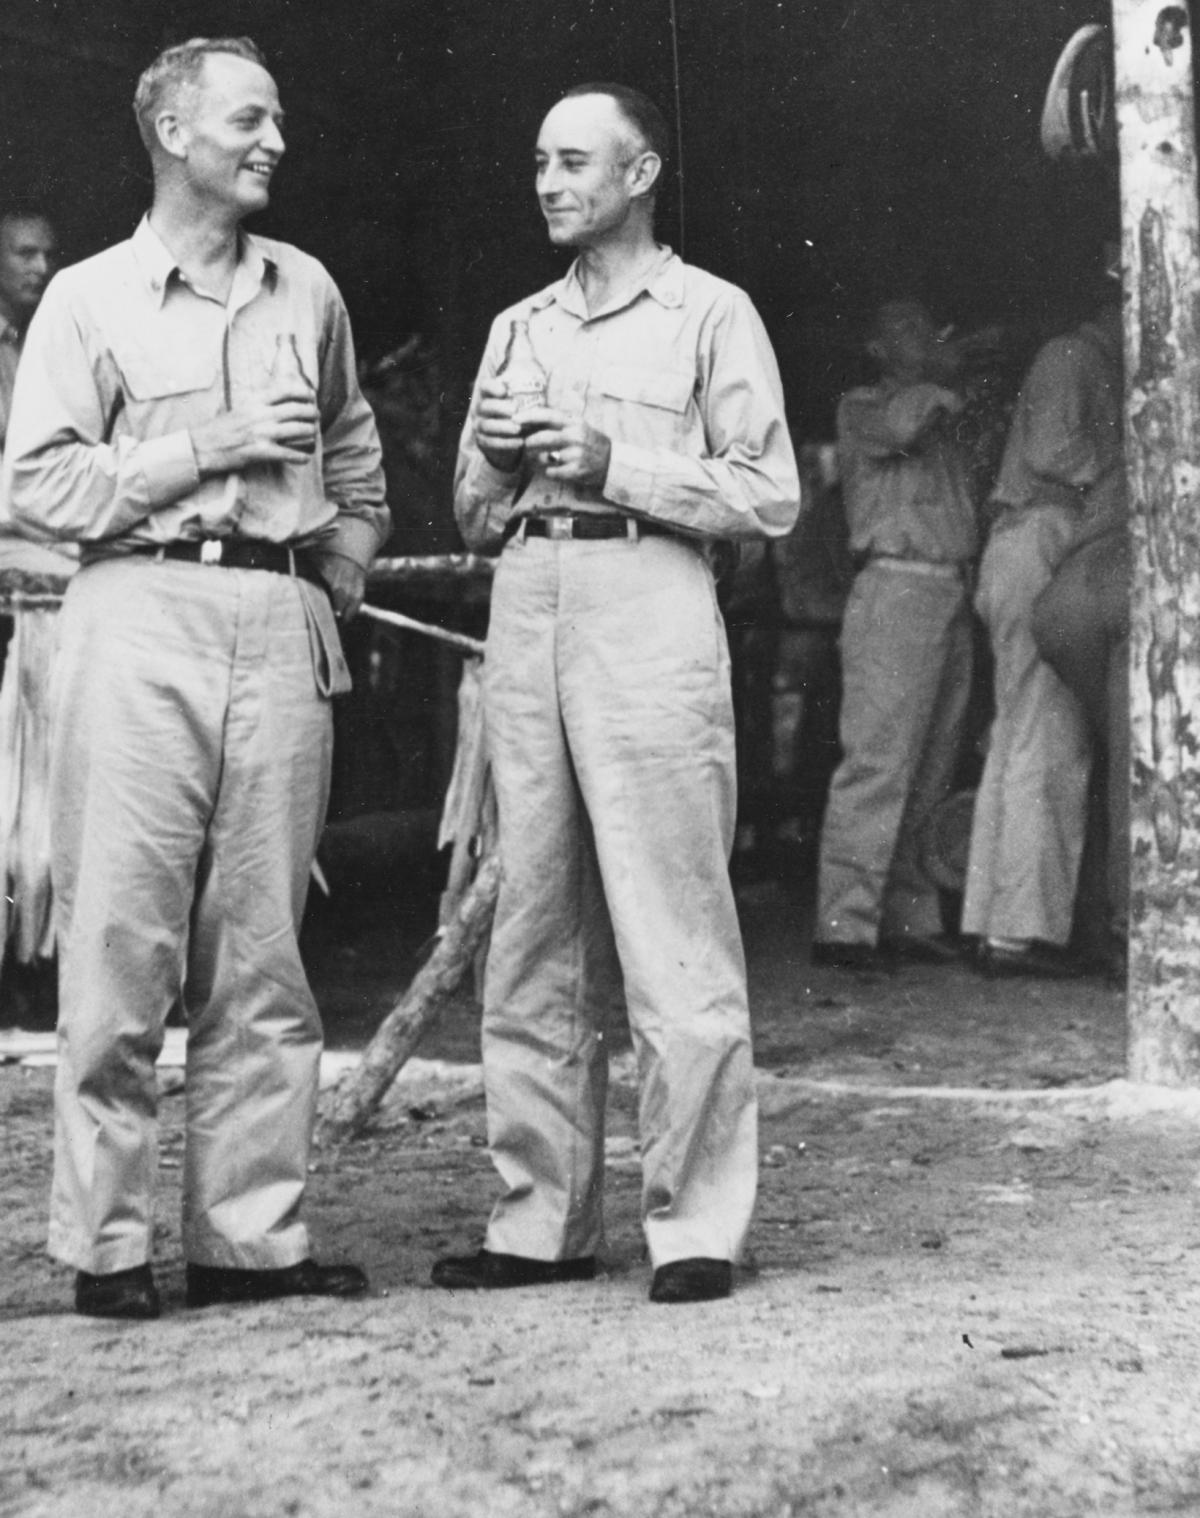 Captains Arleigh Burke (left) and Bernard Austin in the World War II Pacific